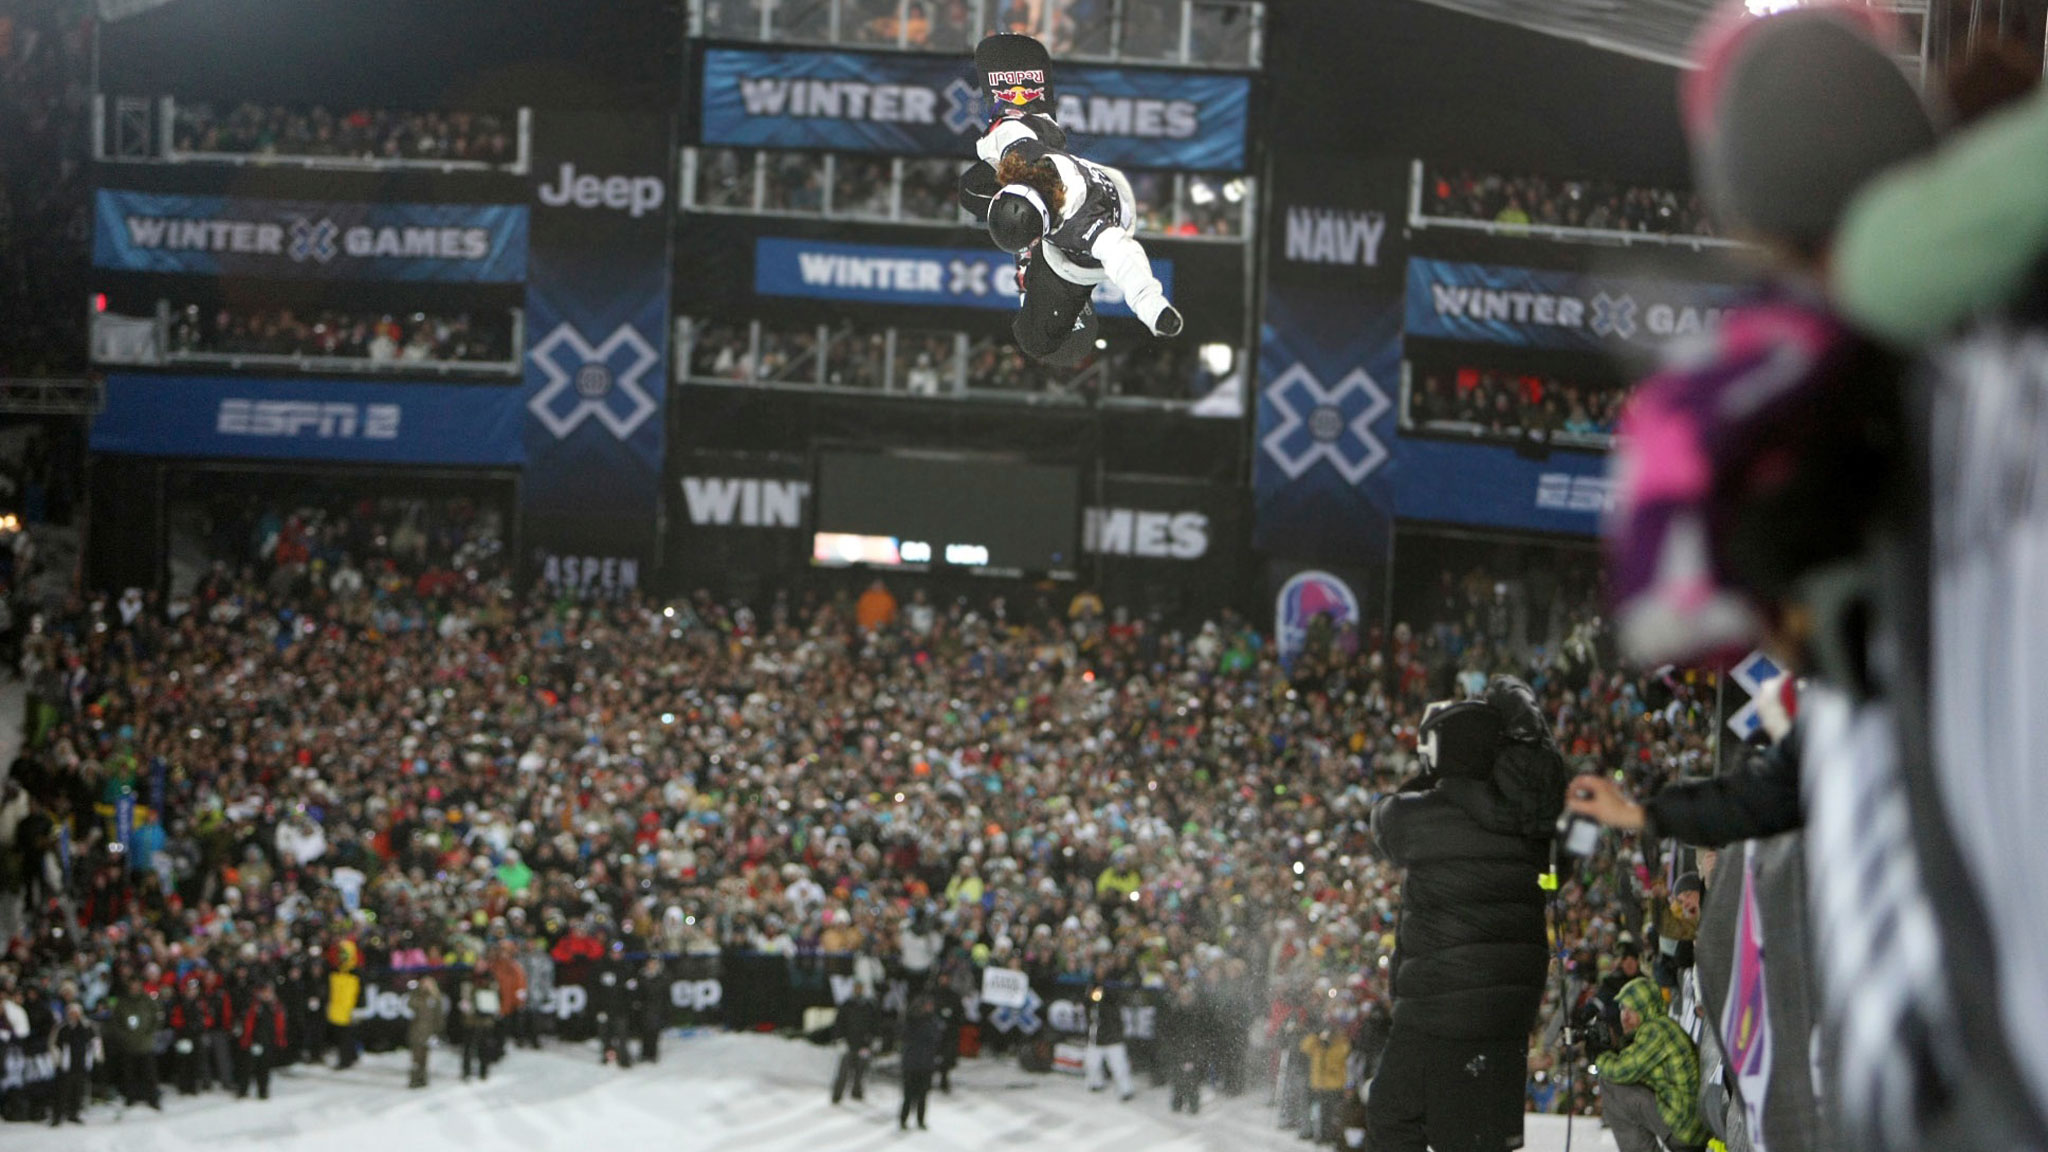 Shaun White on his way to a record three-peat in Snowboard SuperPipe at X Games Aspen in 2010.